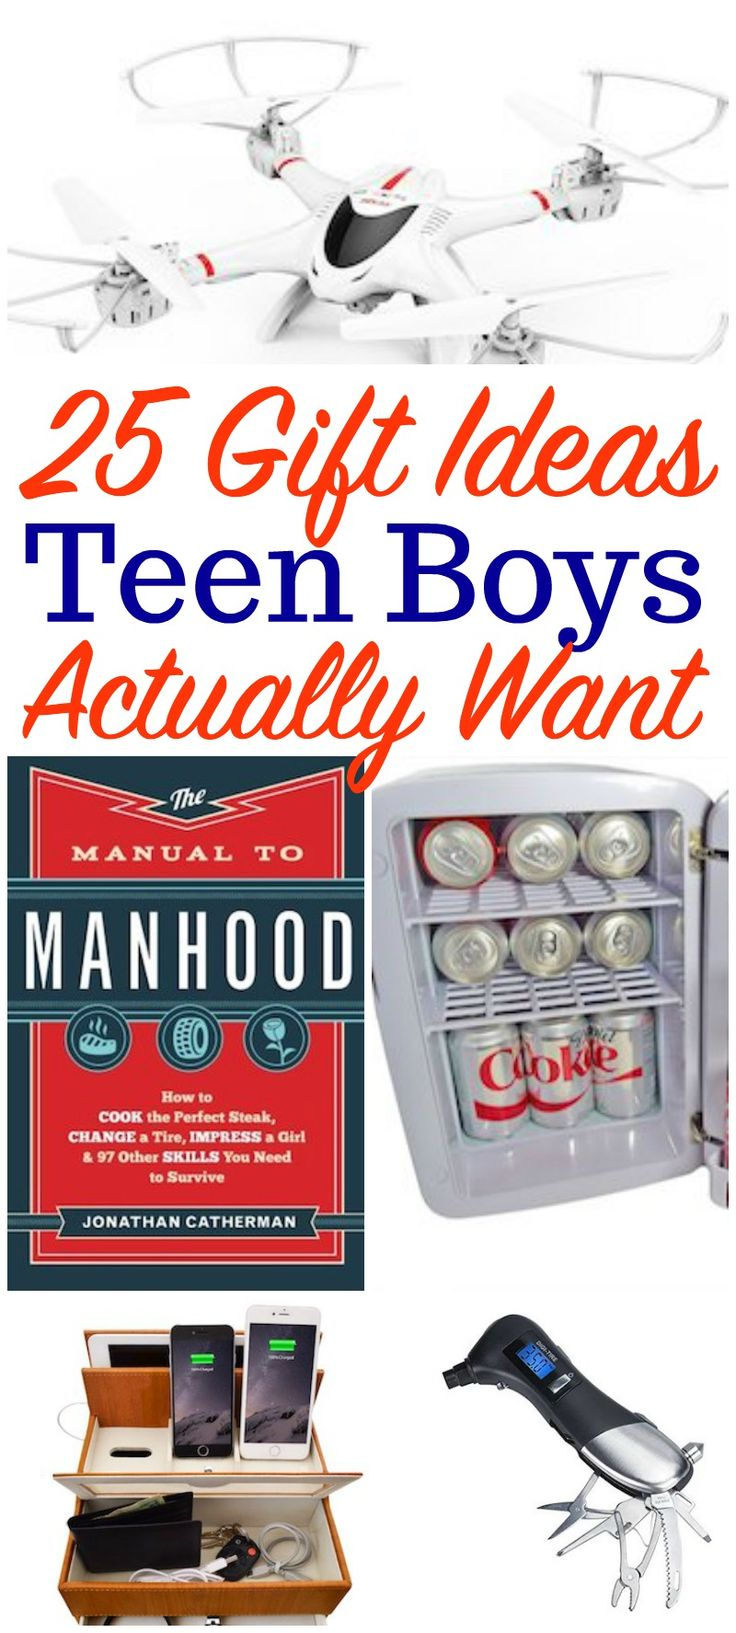 Wondering what to buy your teen boy?  These are perfect teen boy gift ideas! #GiftIdeas #giftguide #teengifts #teenboygiftideas